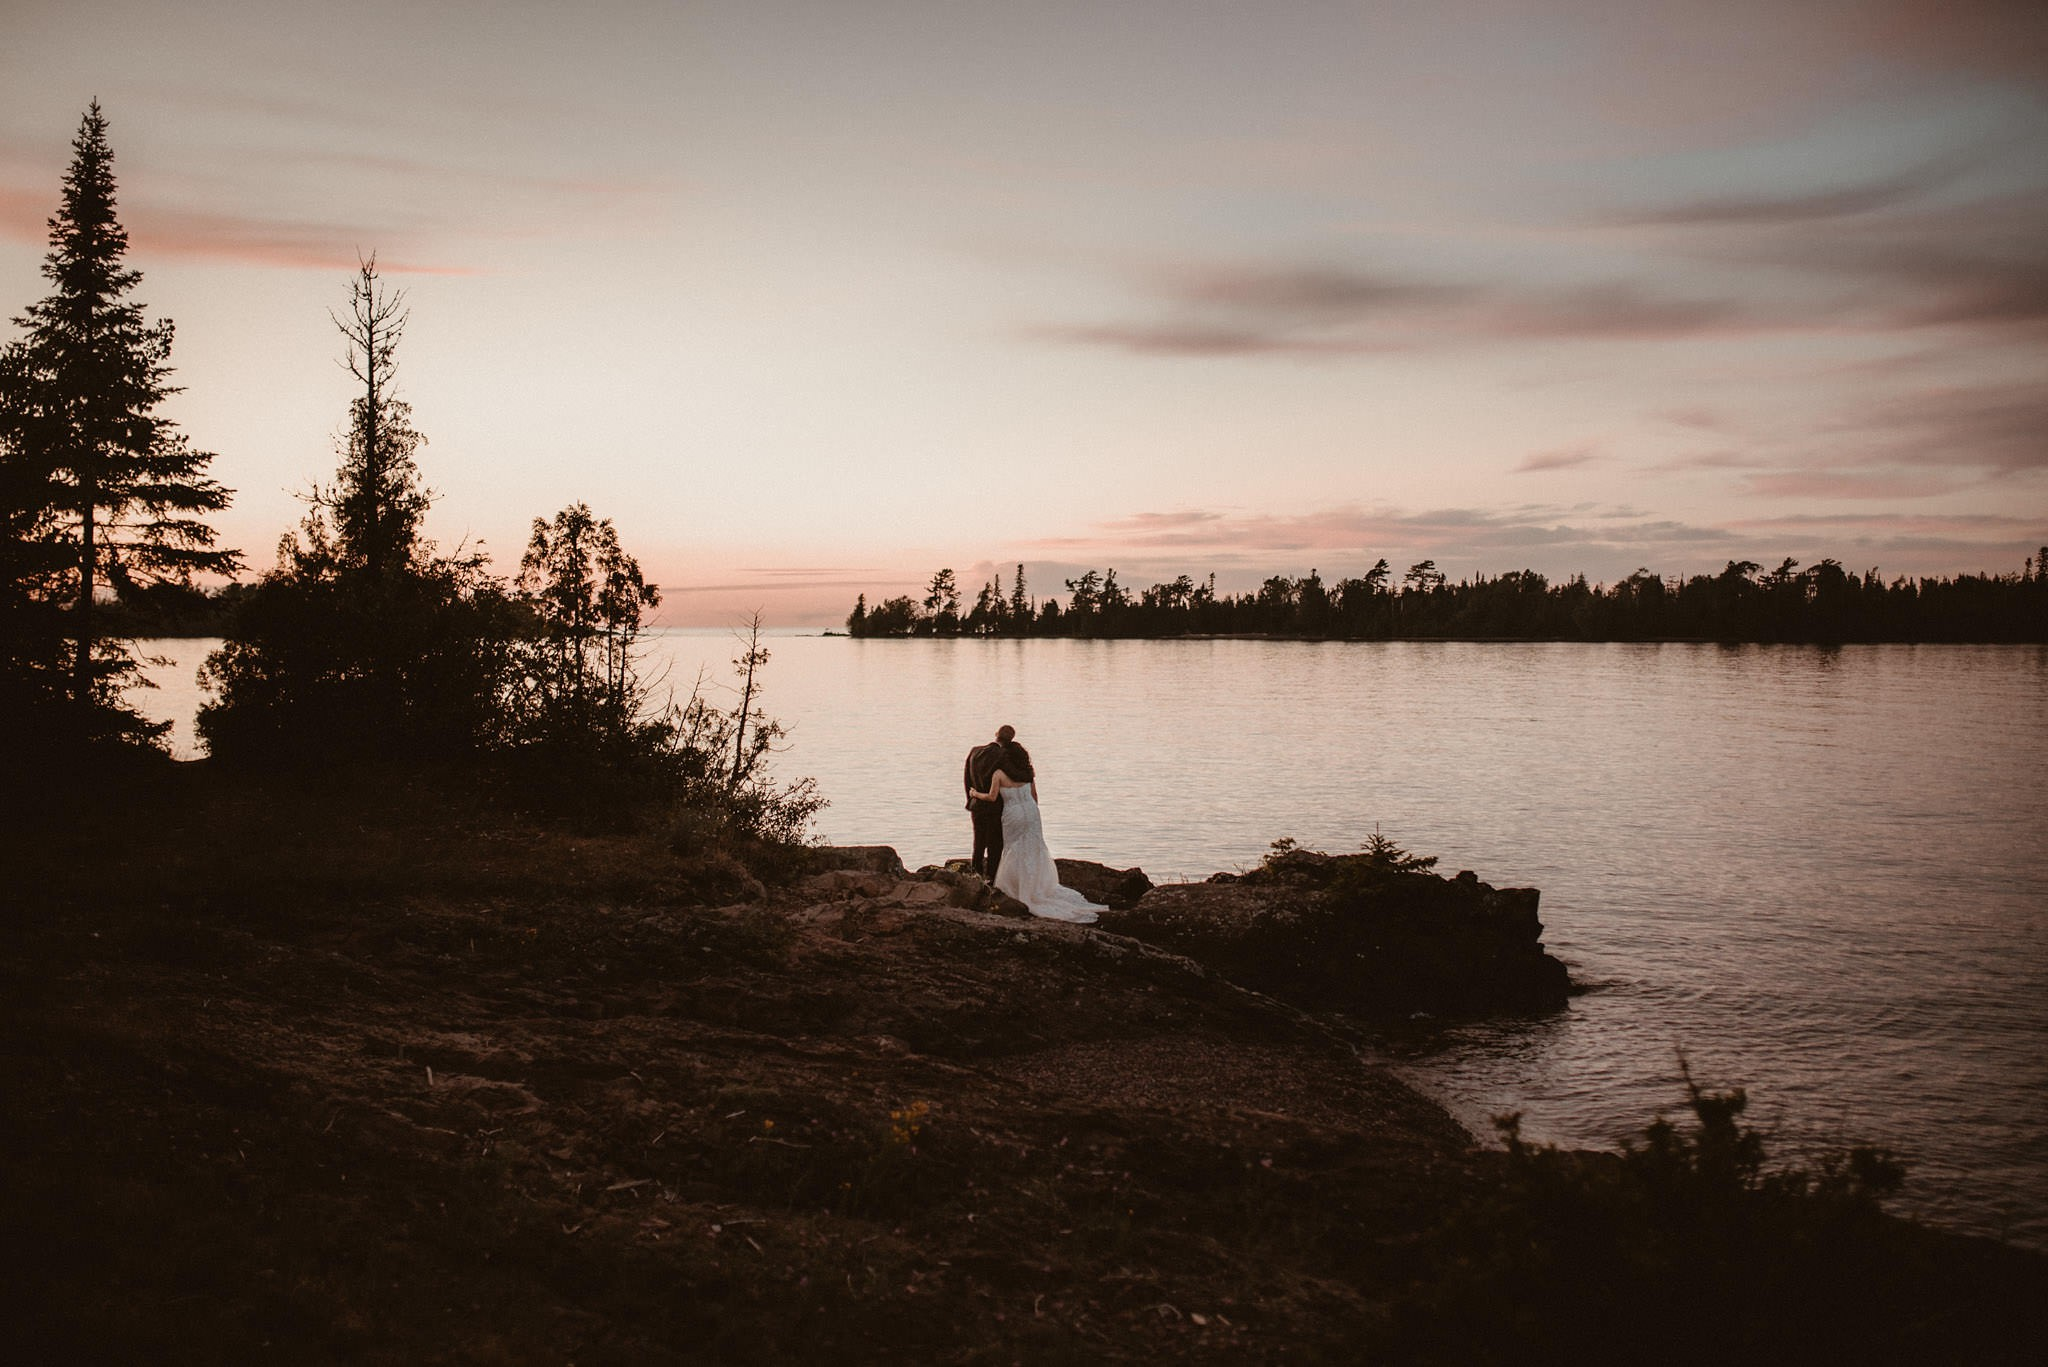 Bride and groom portraits in Copper Harbor, Michigan at sunset